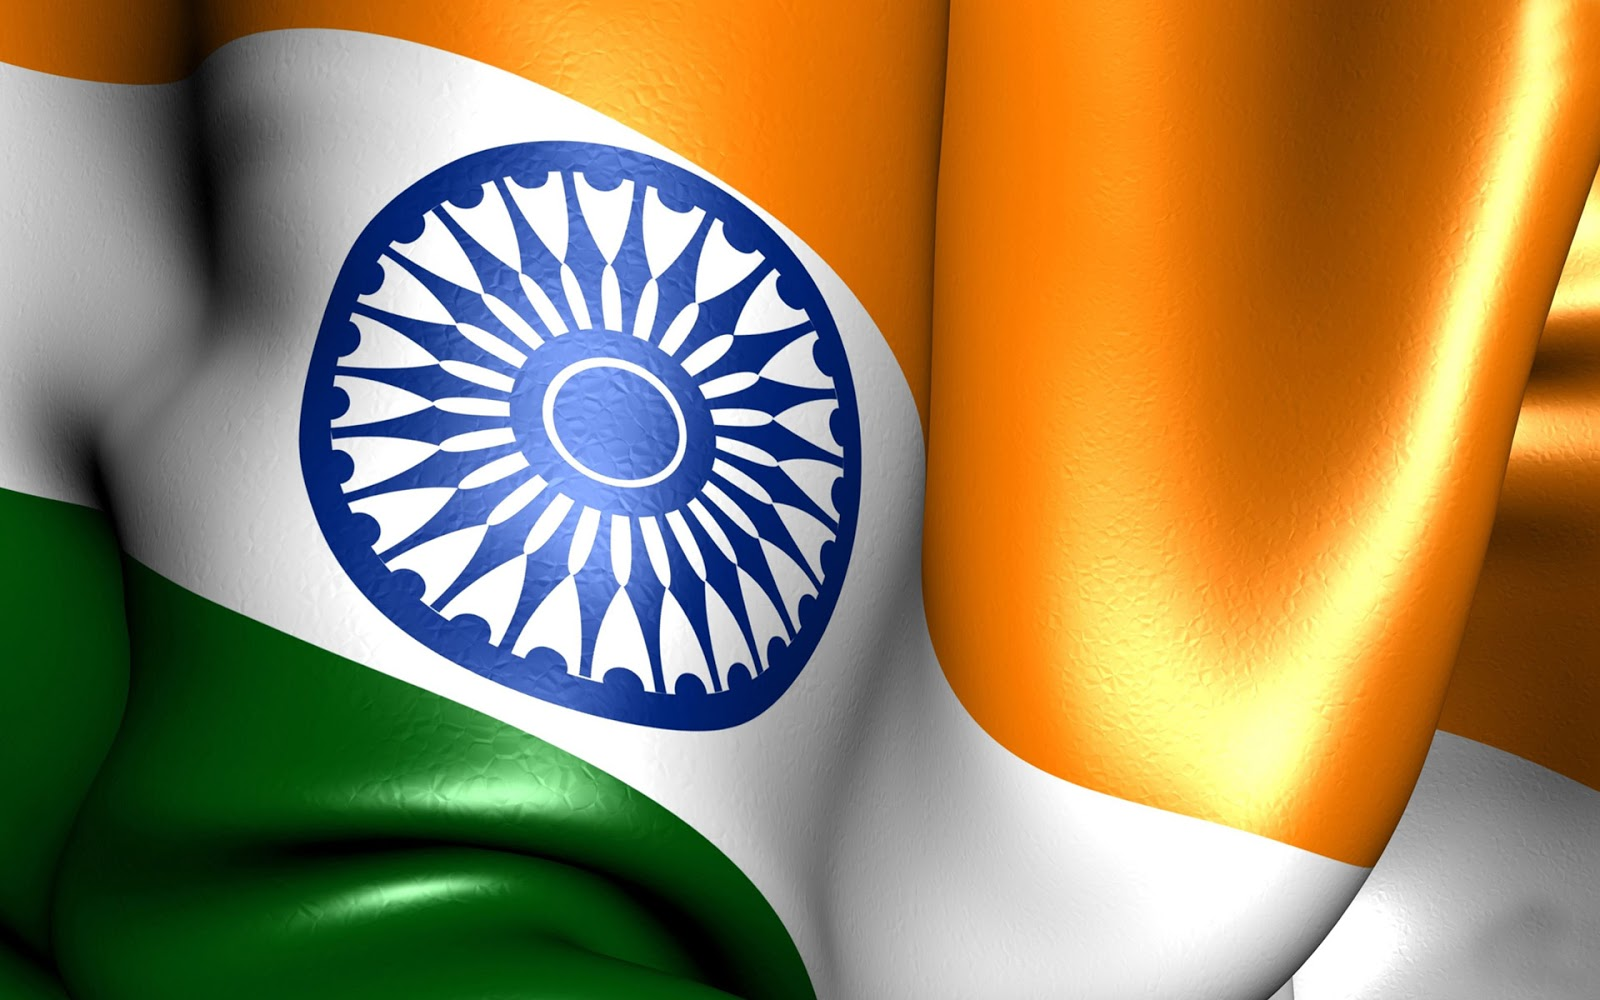 Indian Flag Images Hd720p: Festival 2013